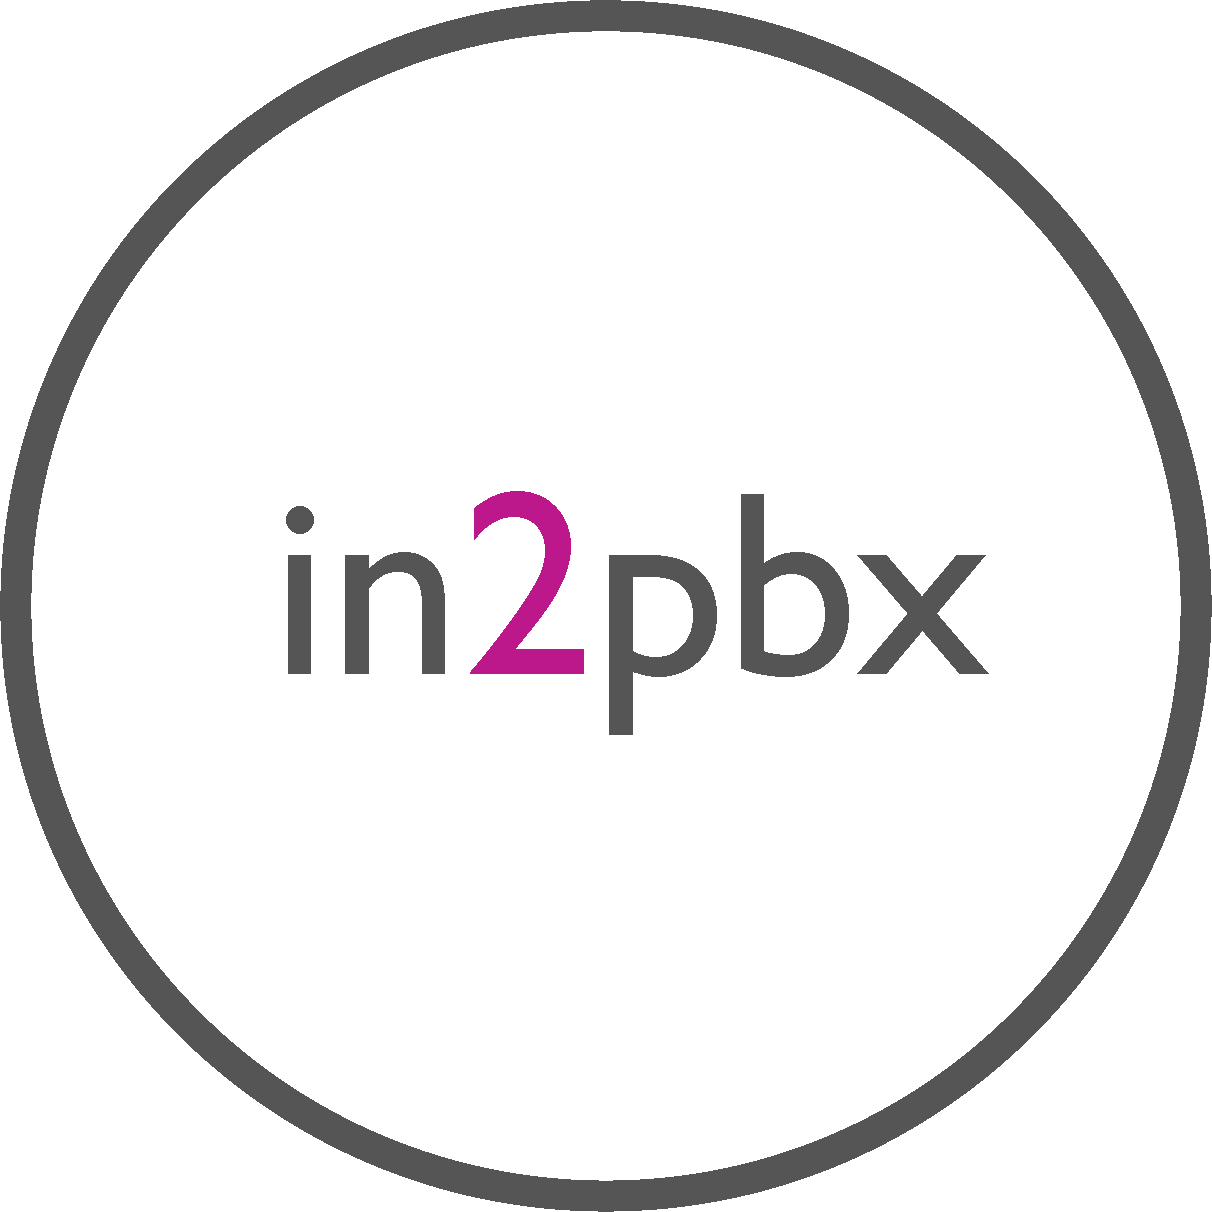 in2pbx-logo